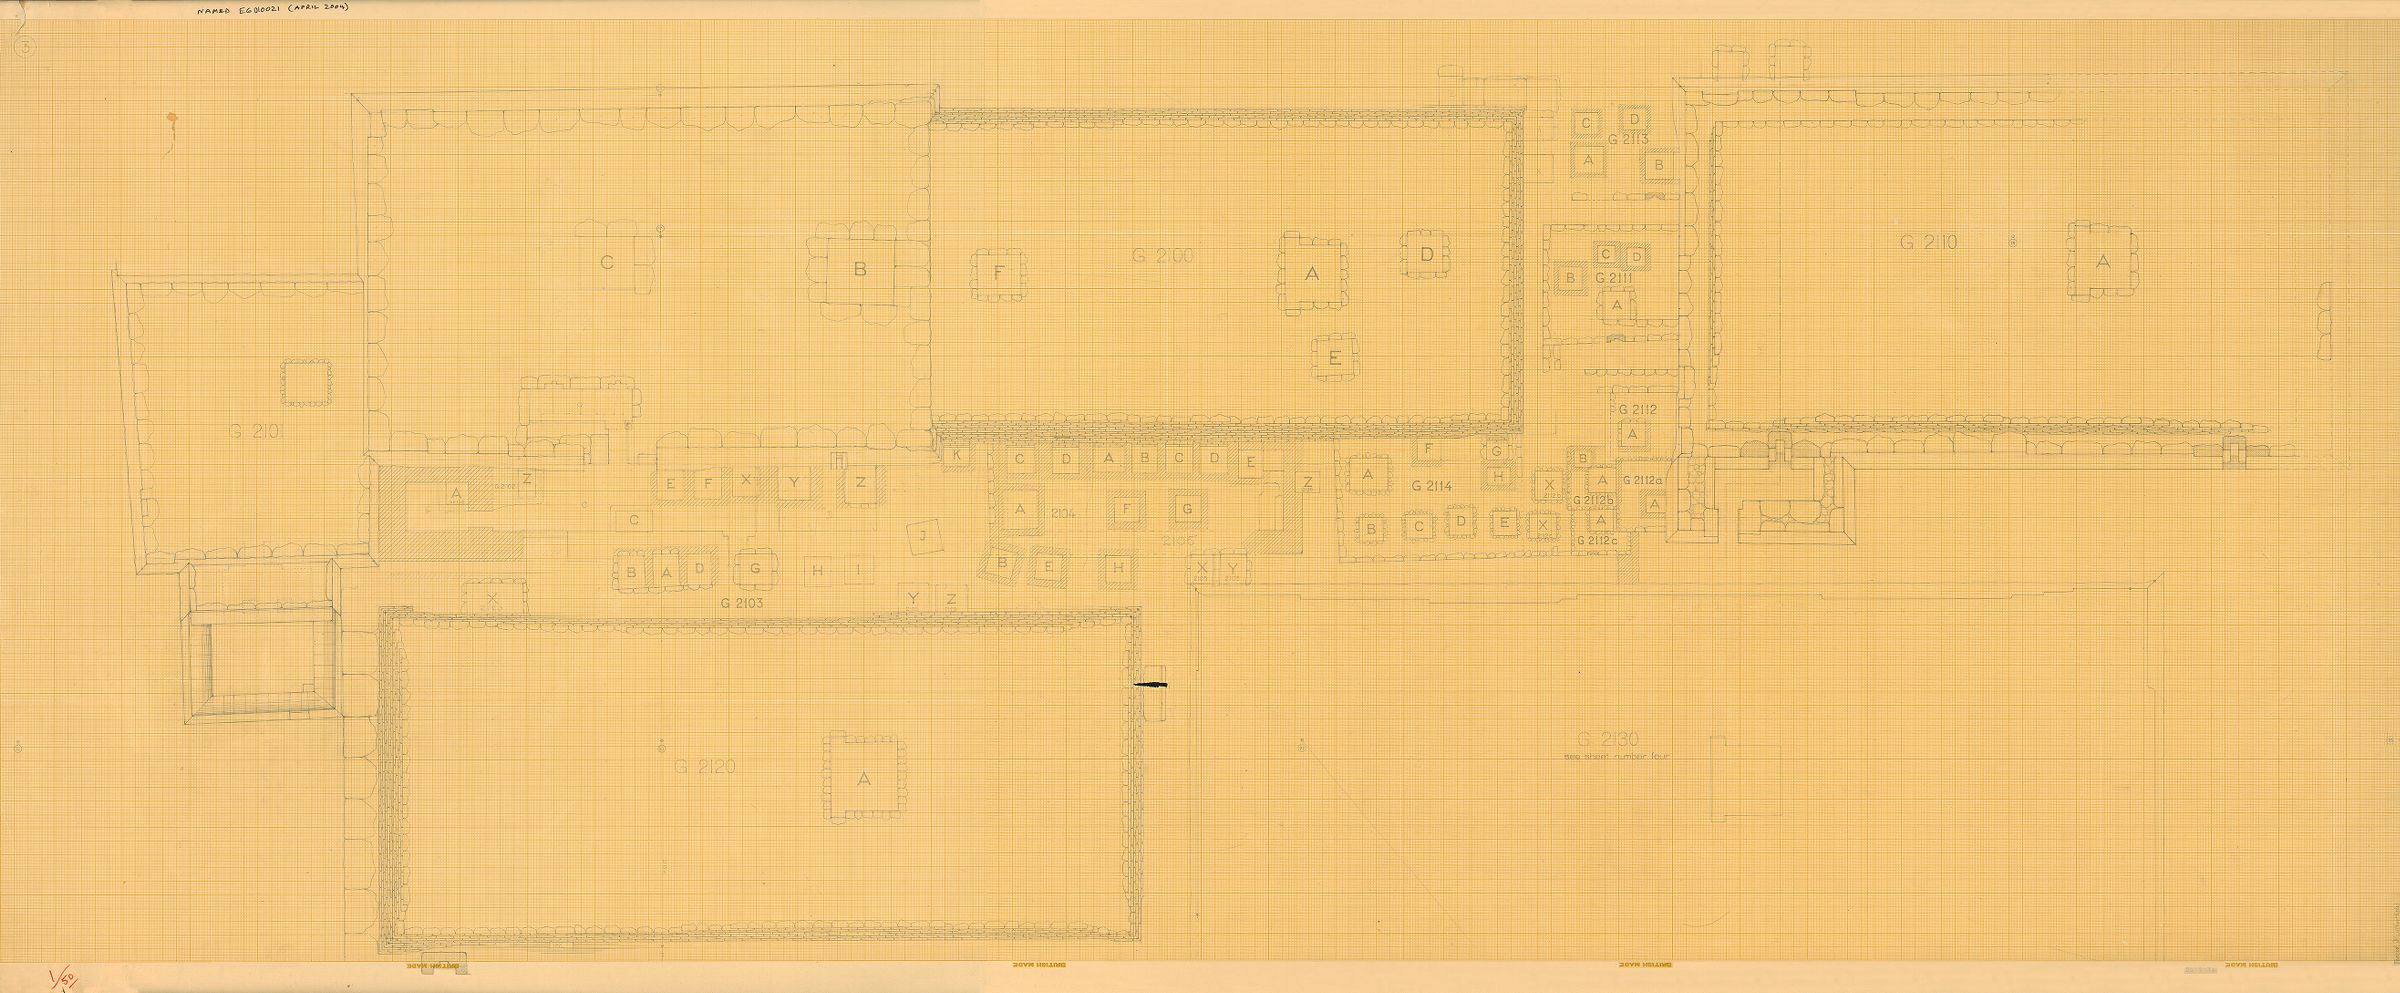 Maps and plans: Plan of G 2100, G 2100-I, G 2100-II, G 2110, G 2120